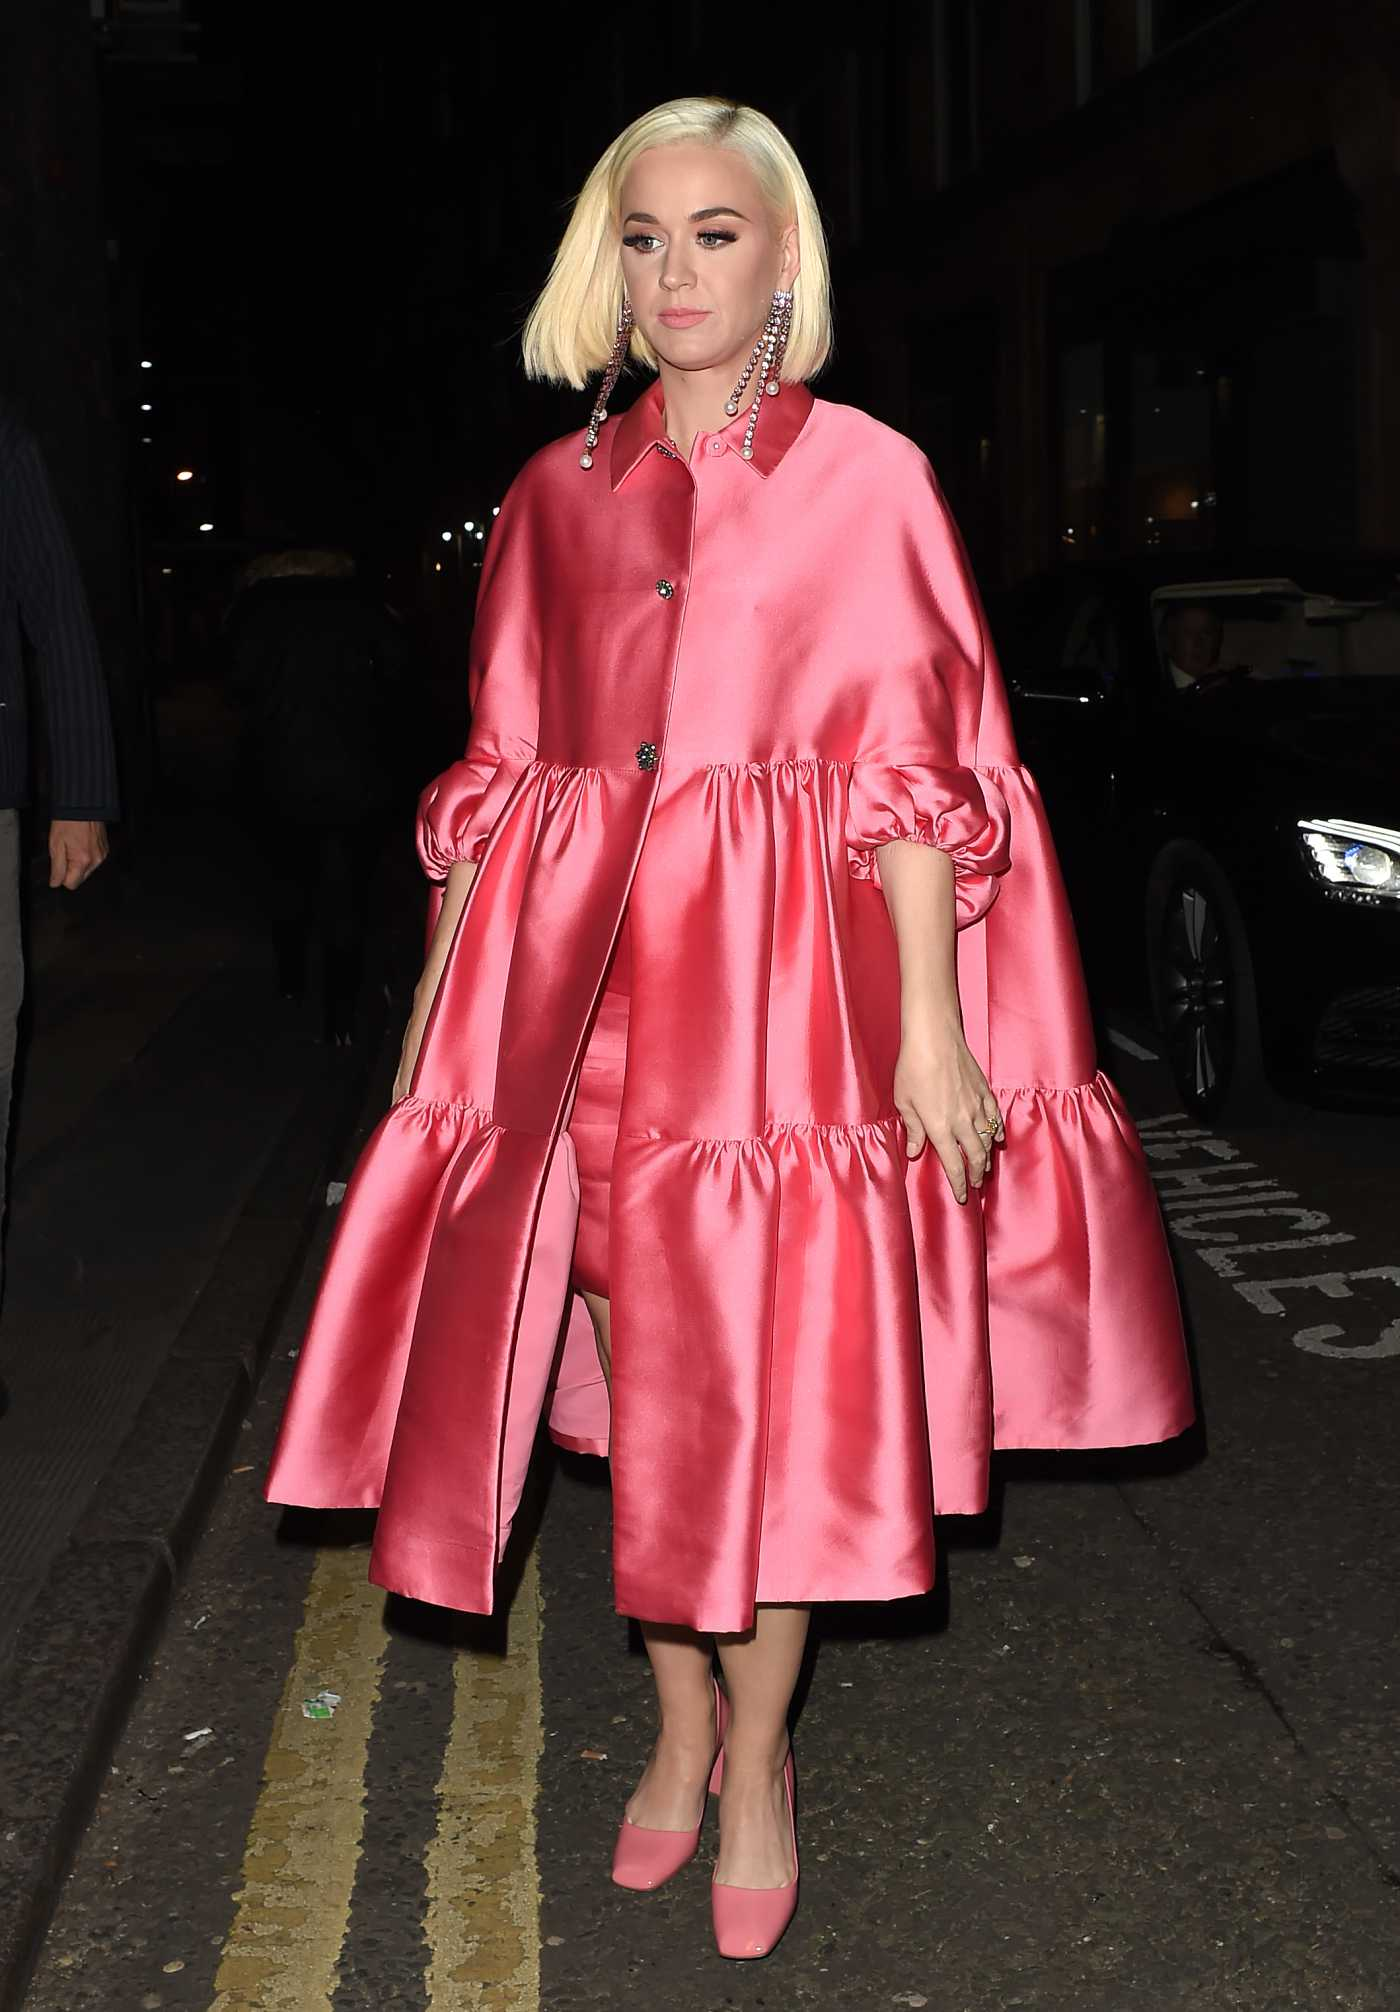 Katy Perry in a Pink Trench Coat Arrives at Shaftesbury Theatre in London 02/03/2020